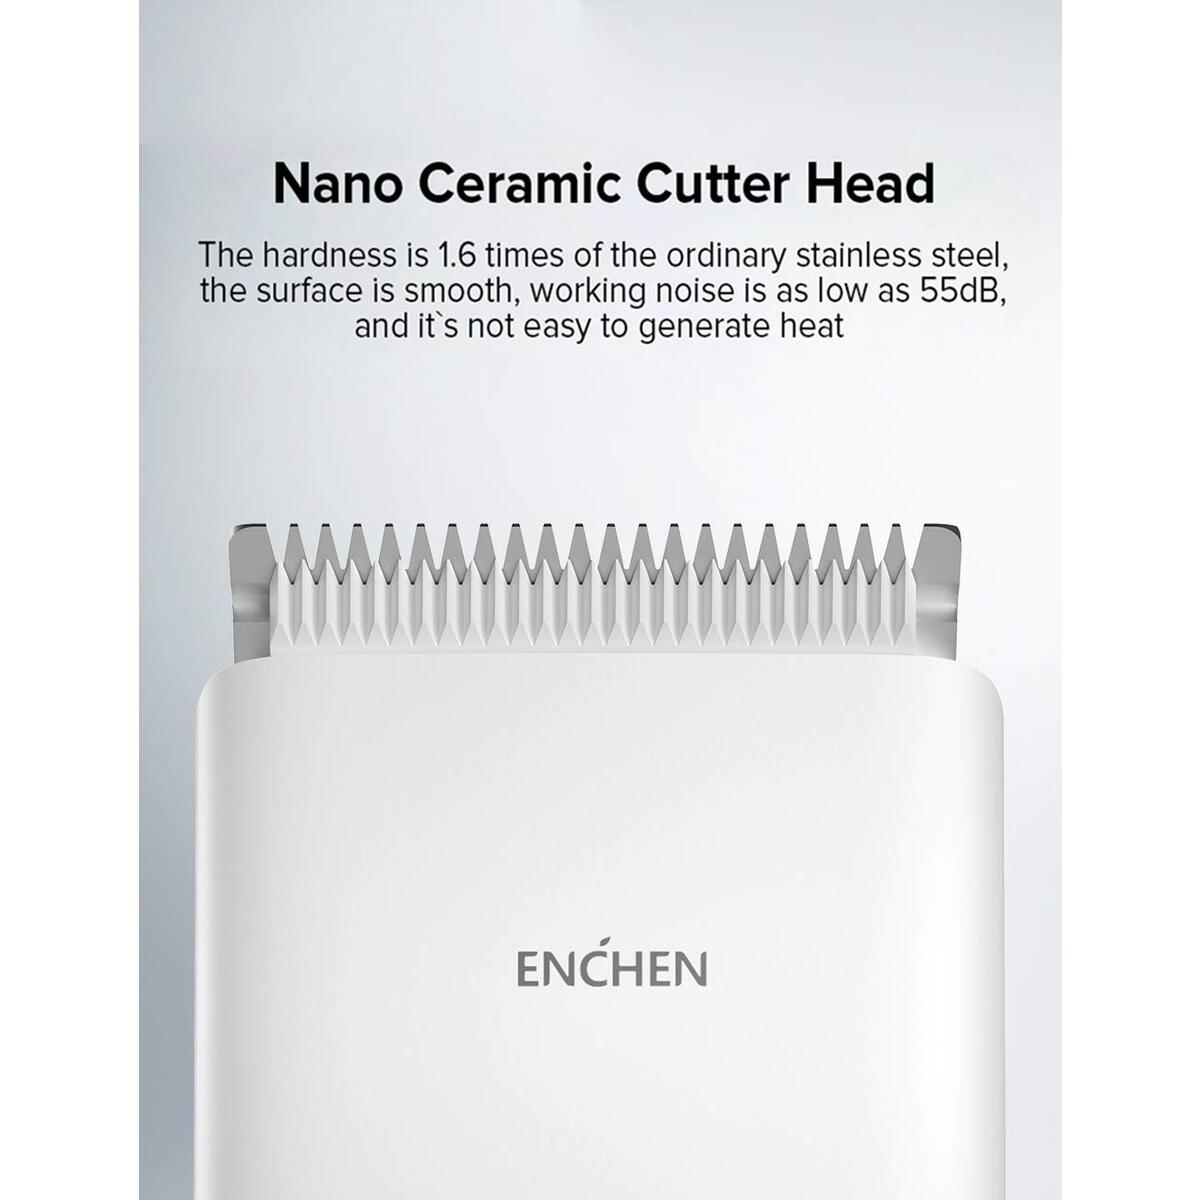 Hair Clippers for Men Cordless Haircut Clippers with Ceramic Blade Head,One-Key Positioning Comb lengths from 3-21mm,Waterproof USB Type-C Rechargeable Hair Clippers Professional kit